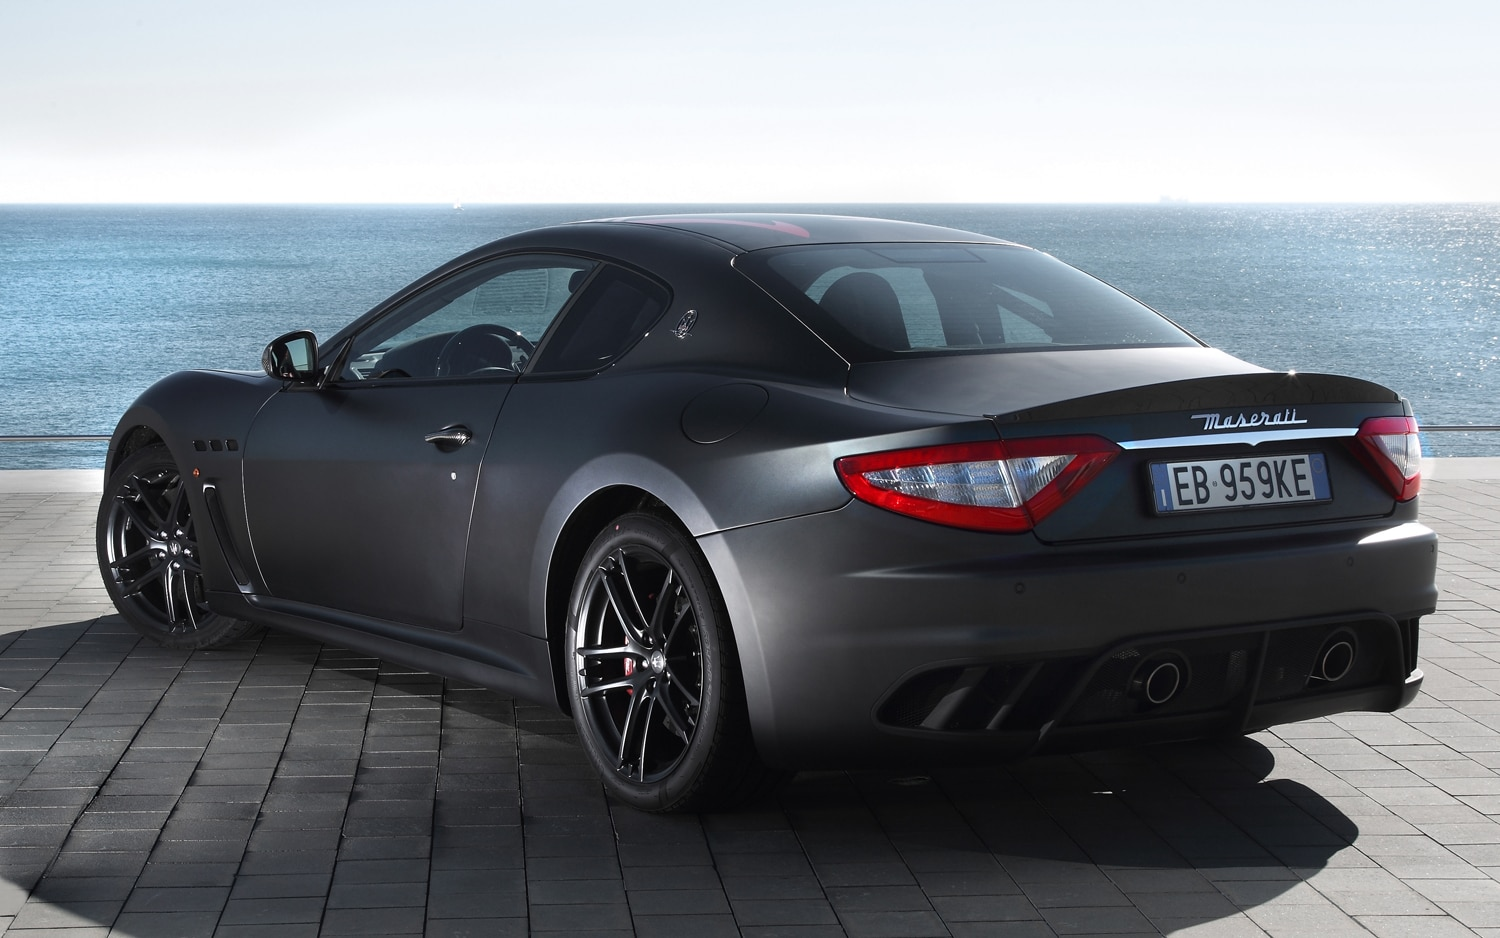 http://st.automobilemag.com/uploads/sites/10/2015/09/2012-maserati-granturismo-MC-stradale-rear-three-quarters-2.jpg